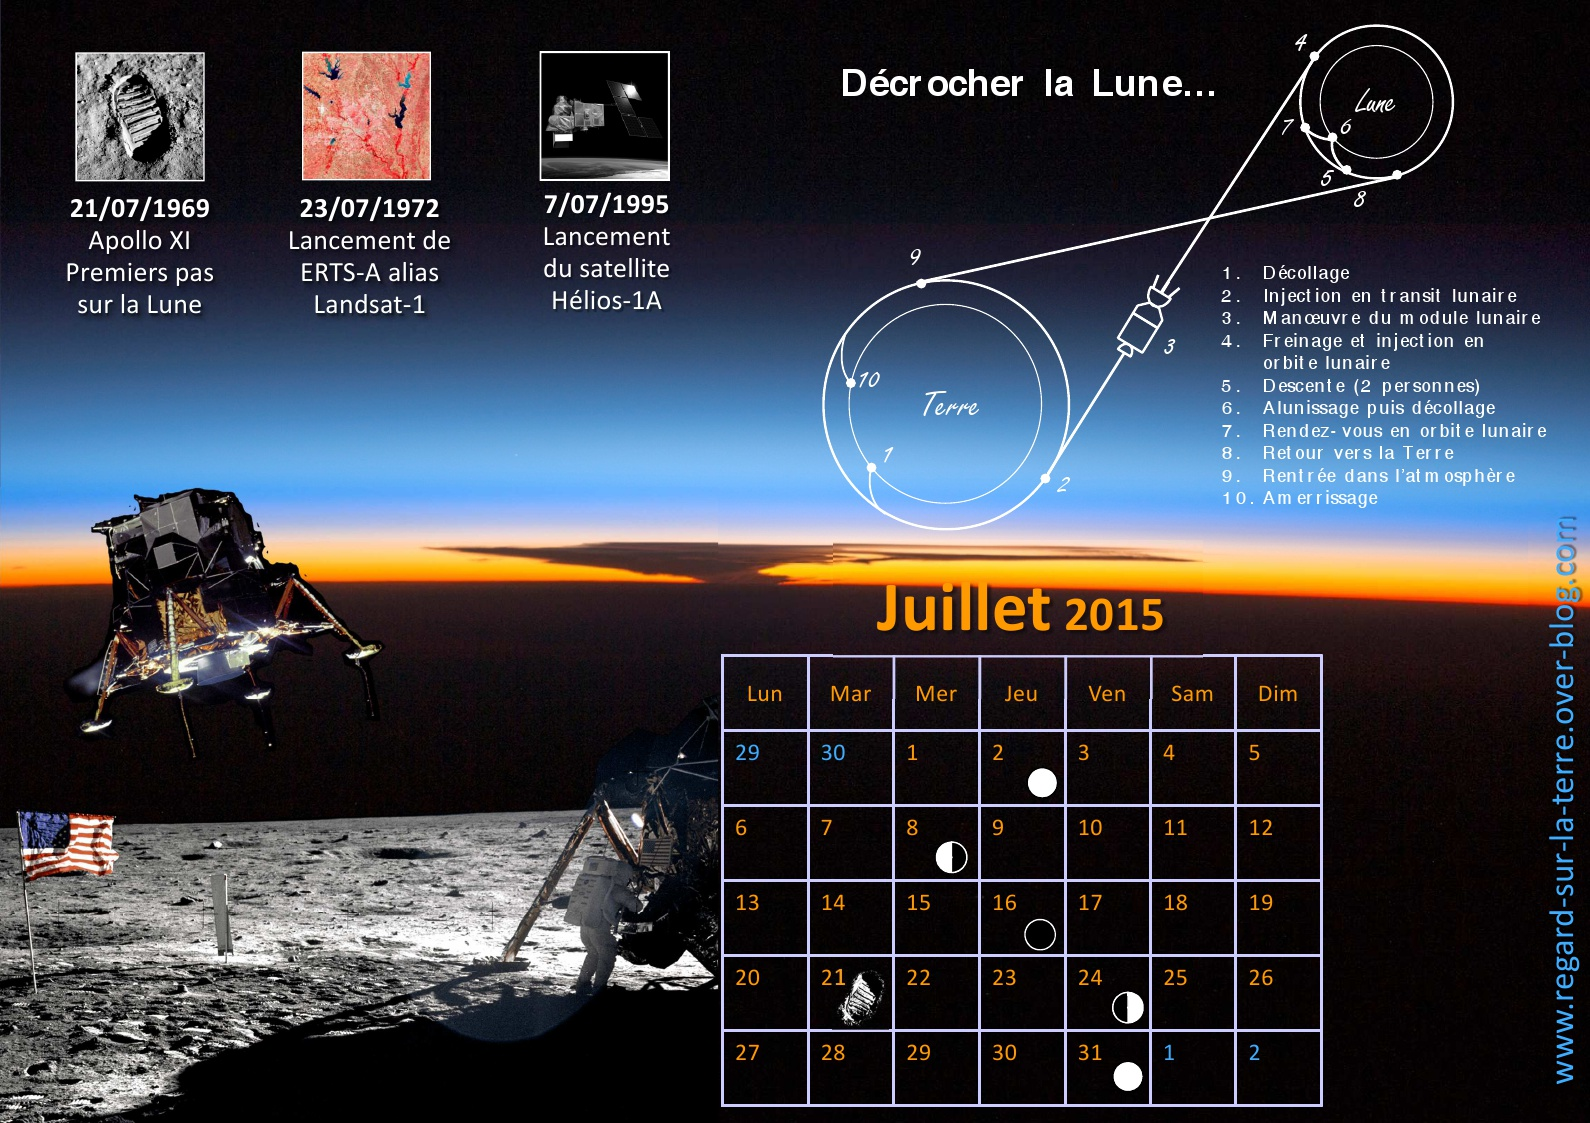 Apollo 11 - Lune - Premiers pas sur la Lune - Man on the Moon - calendrier - NASA